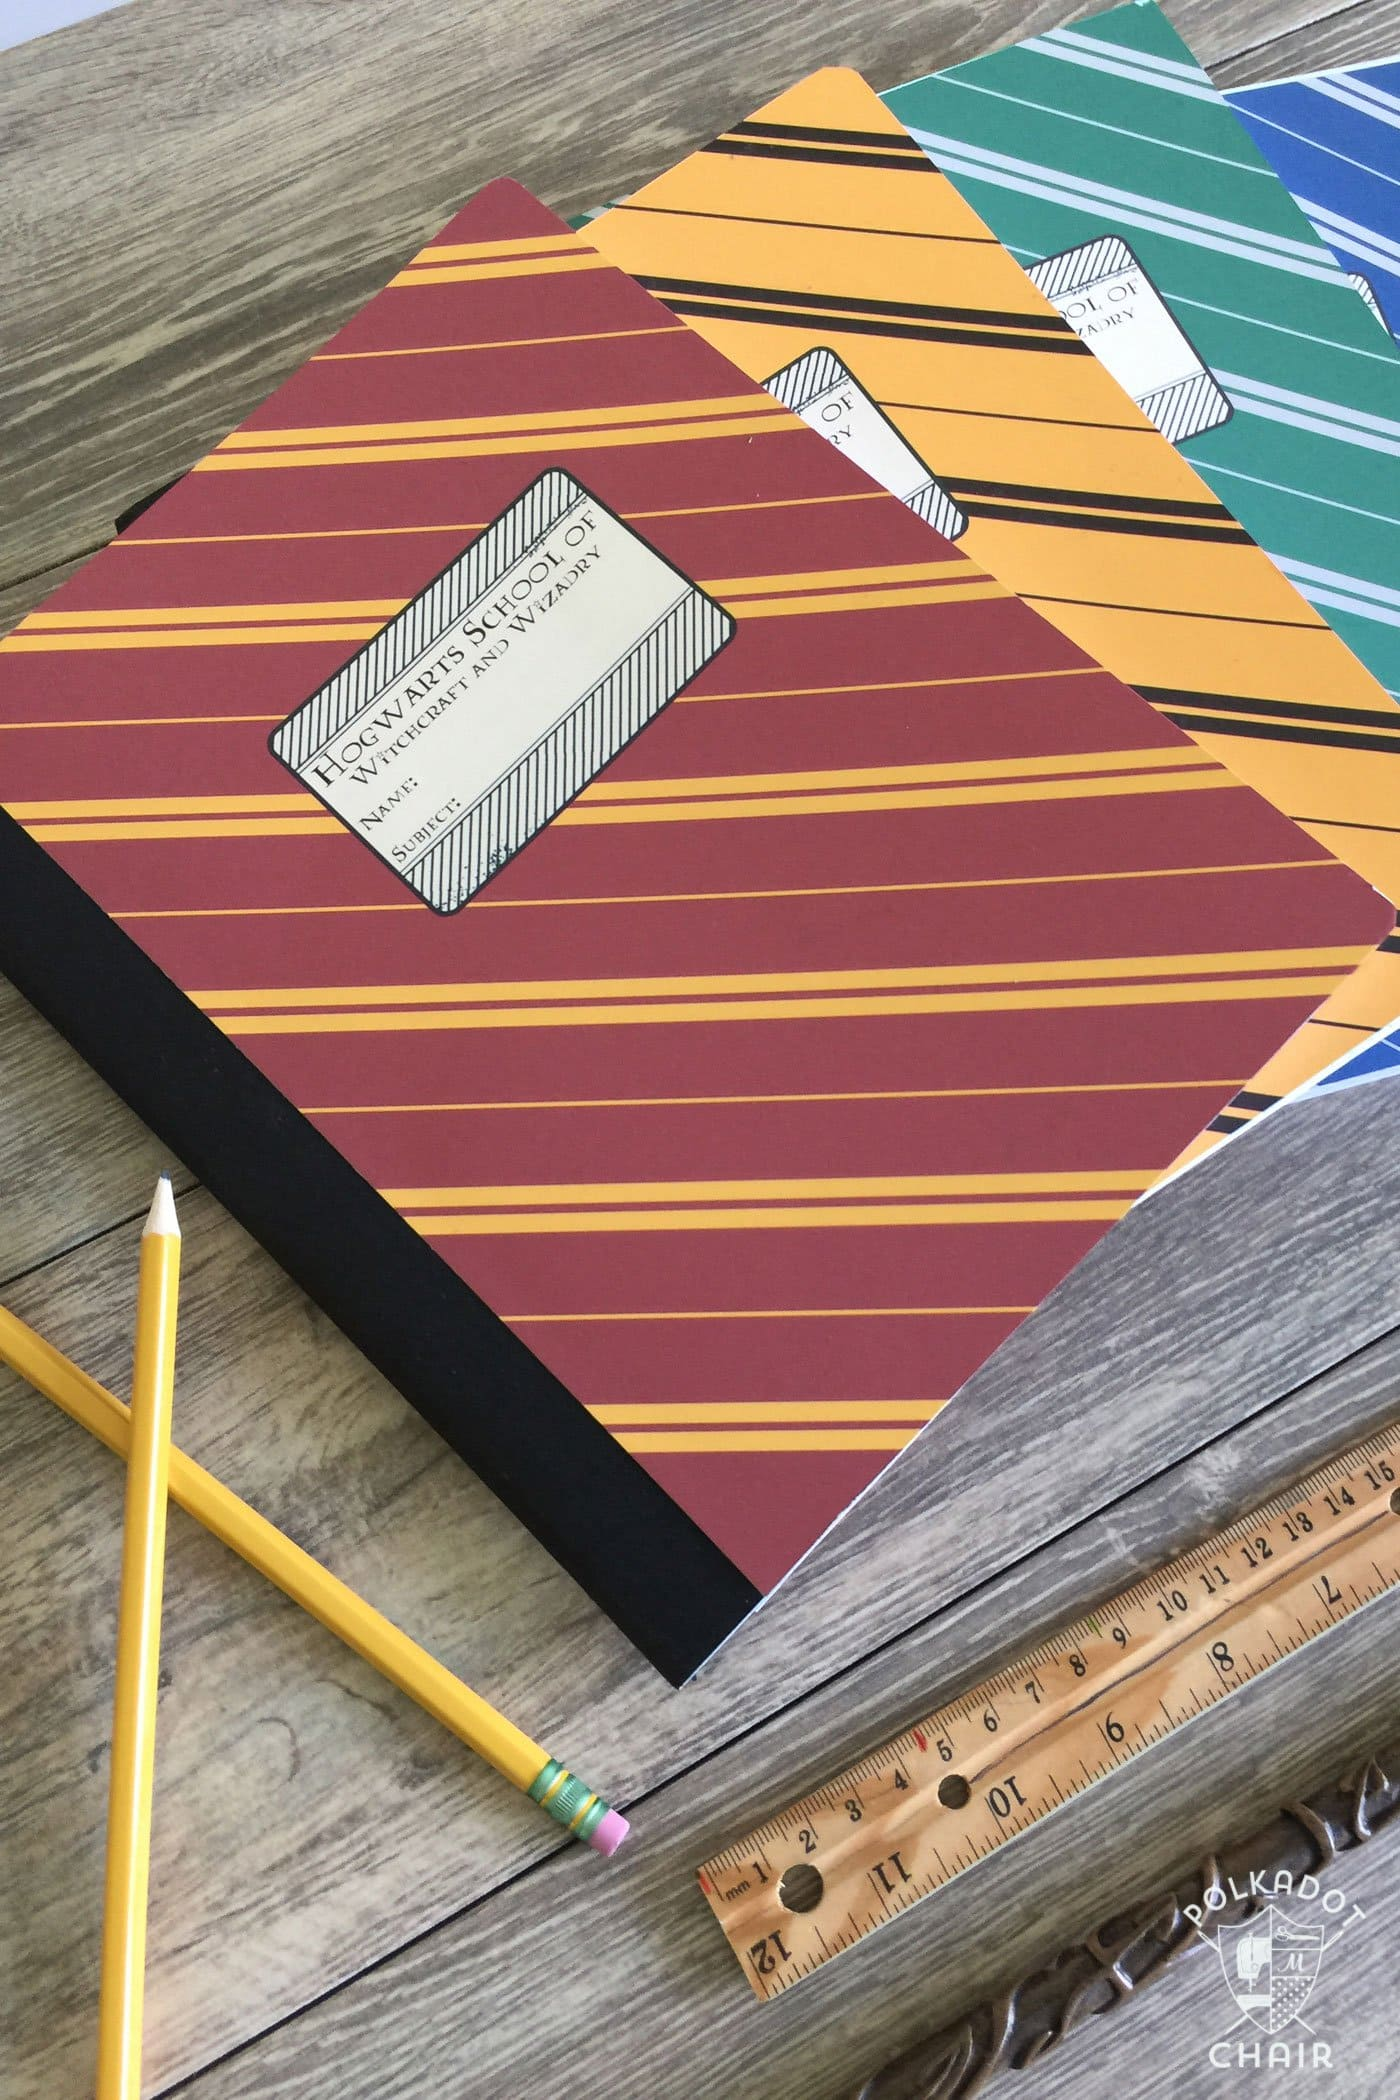 Harry Potter Book Cover Template : Diy hogwarts inspired house notebooks harry potter craft